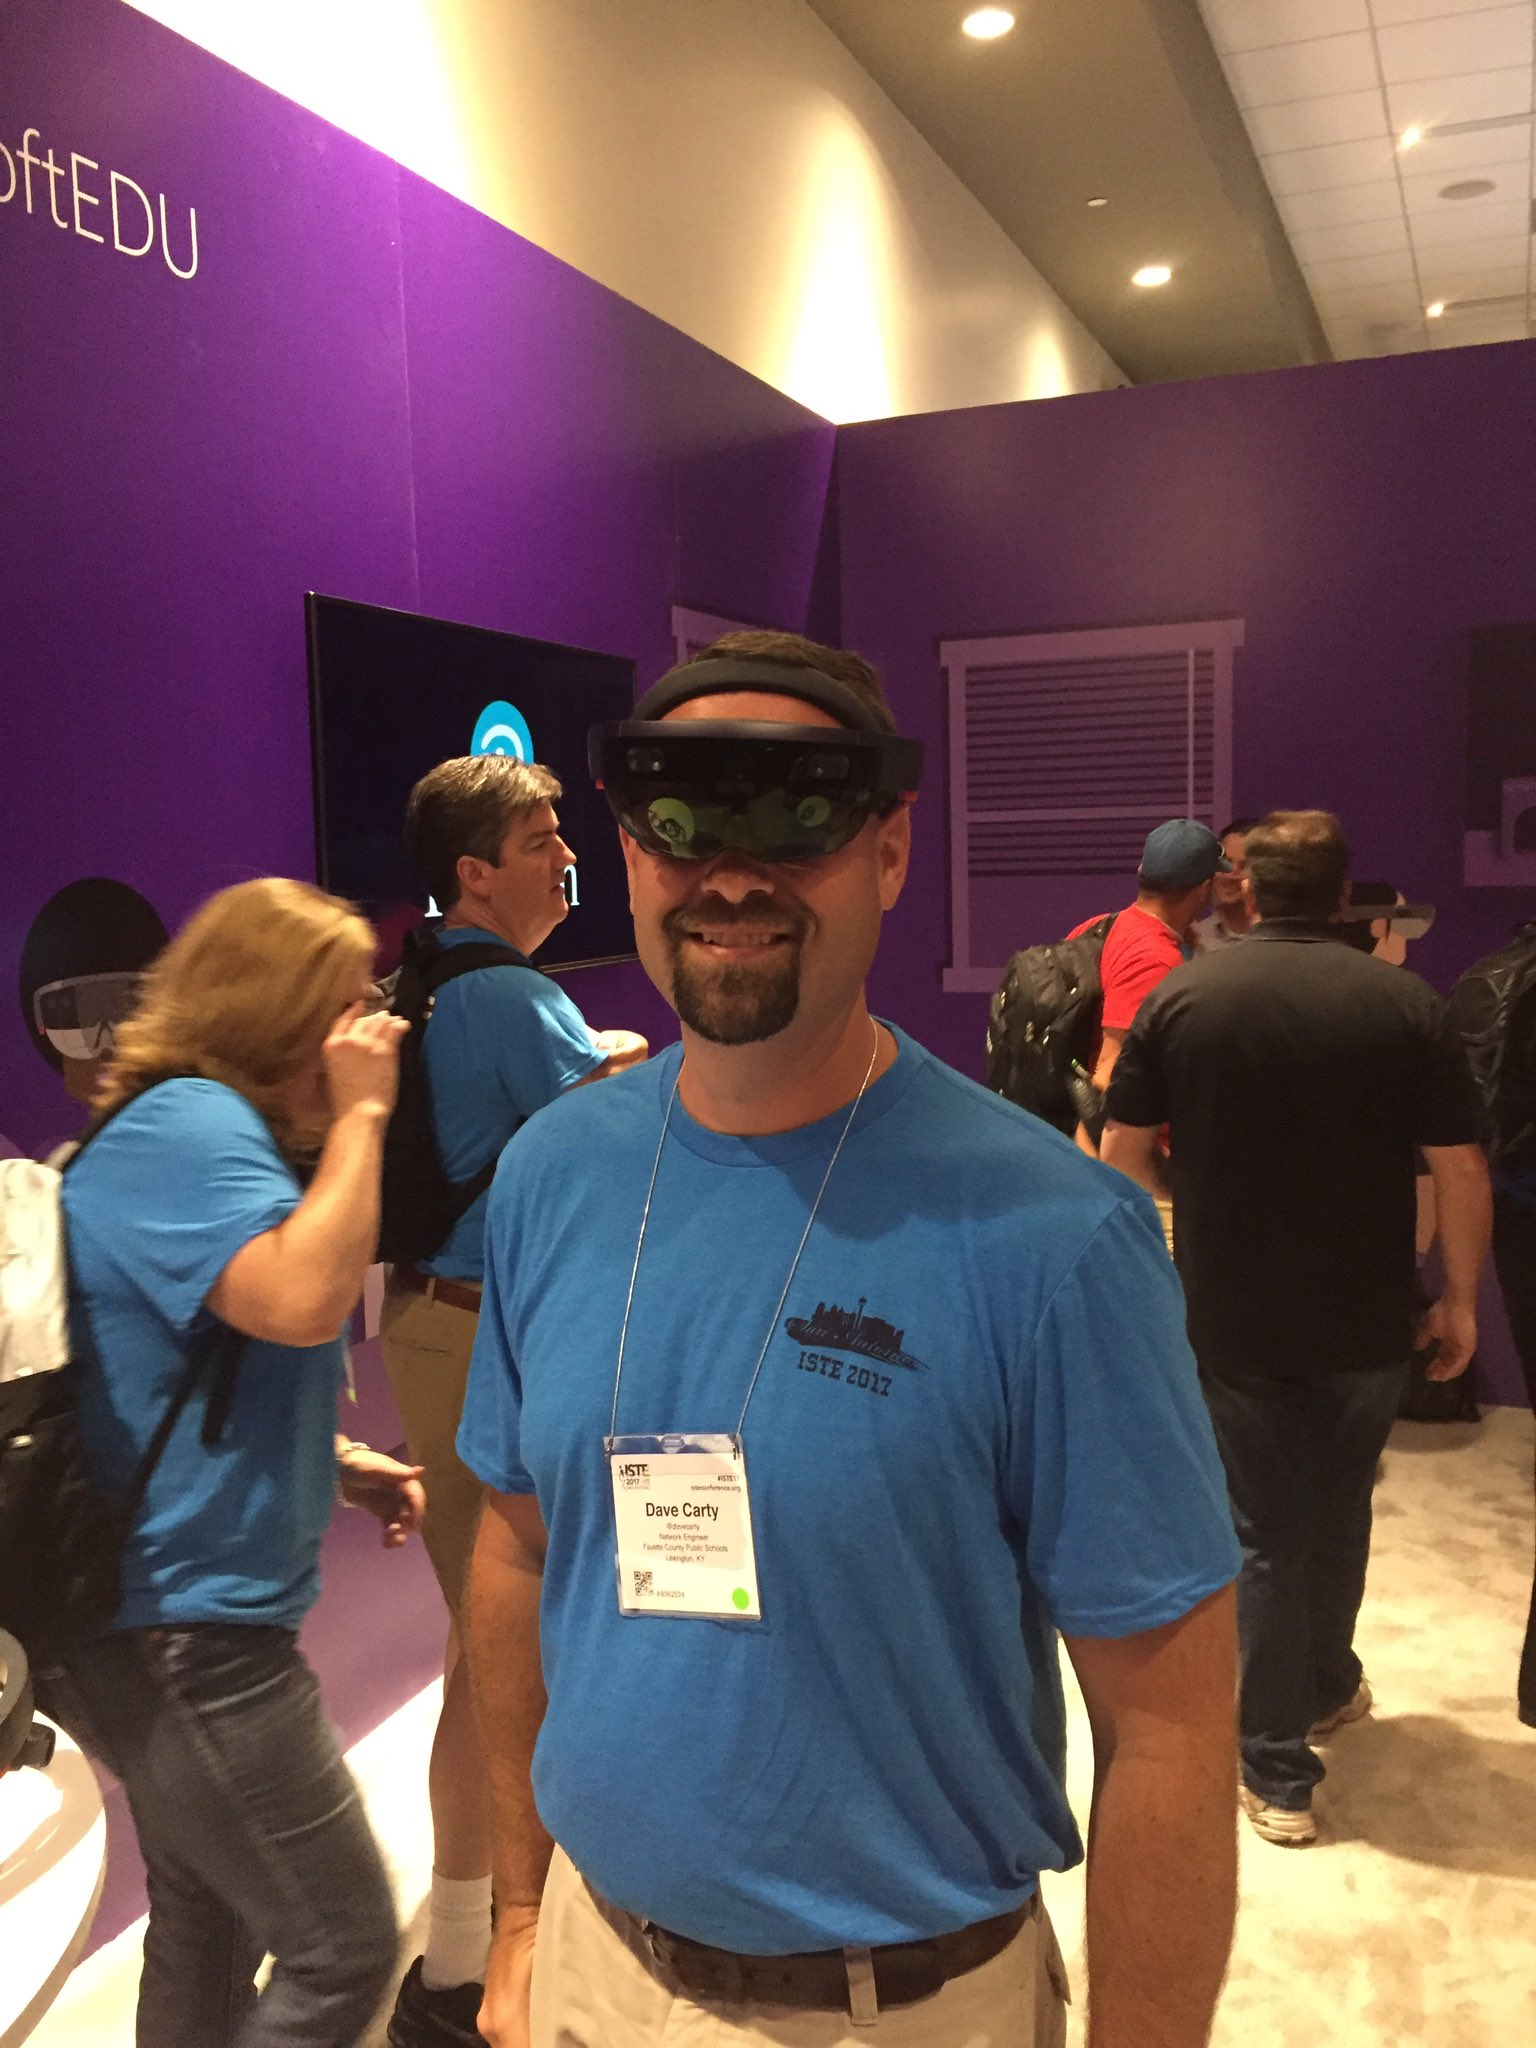 Microsoft Hololens. I got to take a look at ancient artifacts that most schools probably couldn't actually have onsite #fcpsiste https://t.co/9Y31Owu6pS